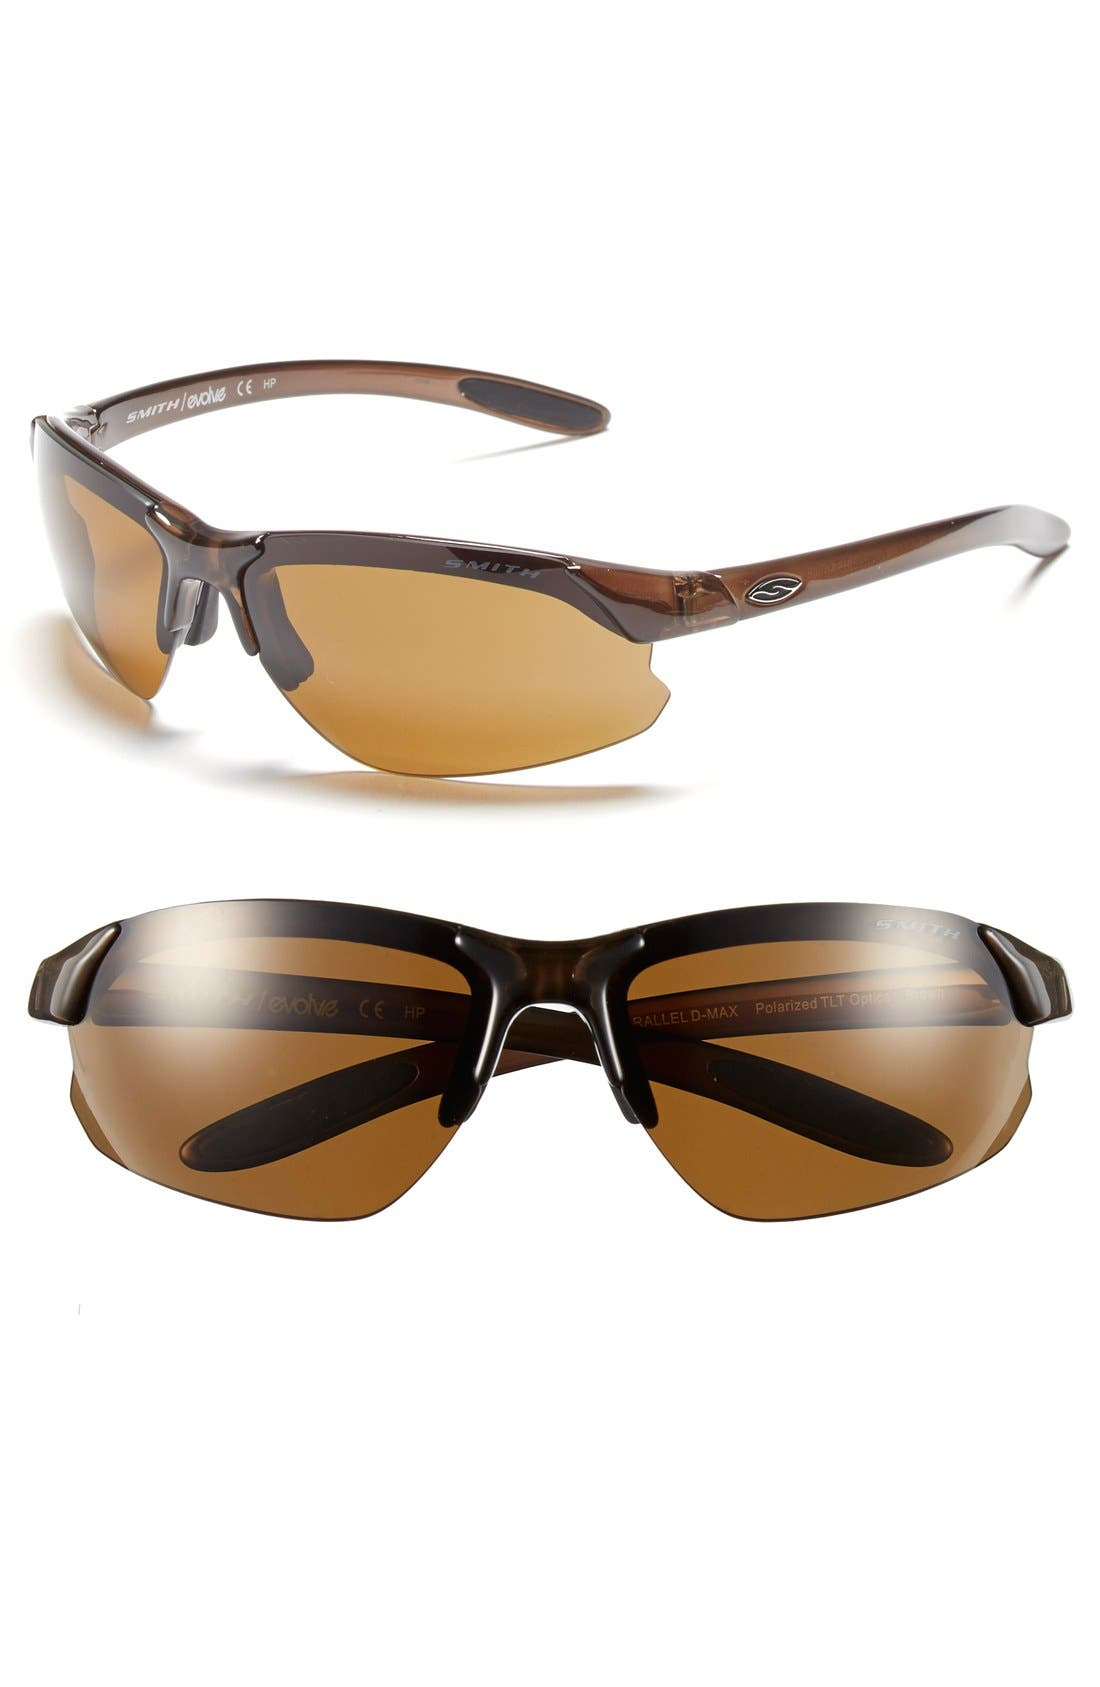 'PARALLEL D MAX' 65MM POLARIZED SUNGLASSES - BROWN/ POLAR BROWN/ CLEAR